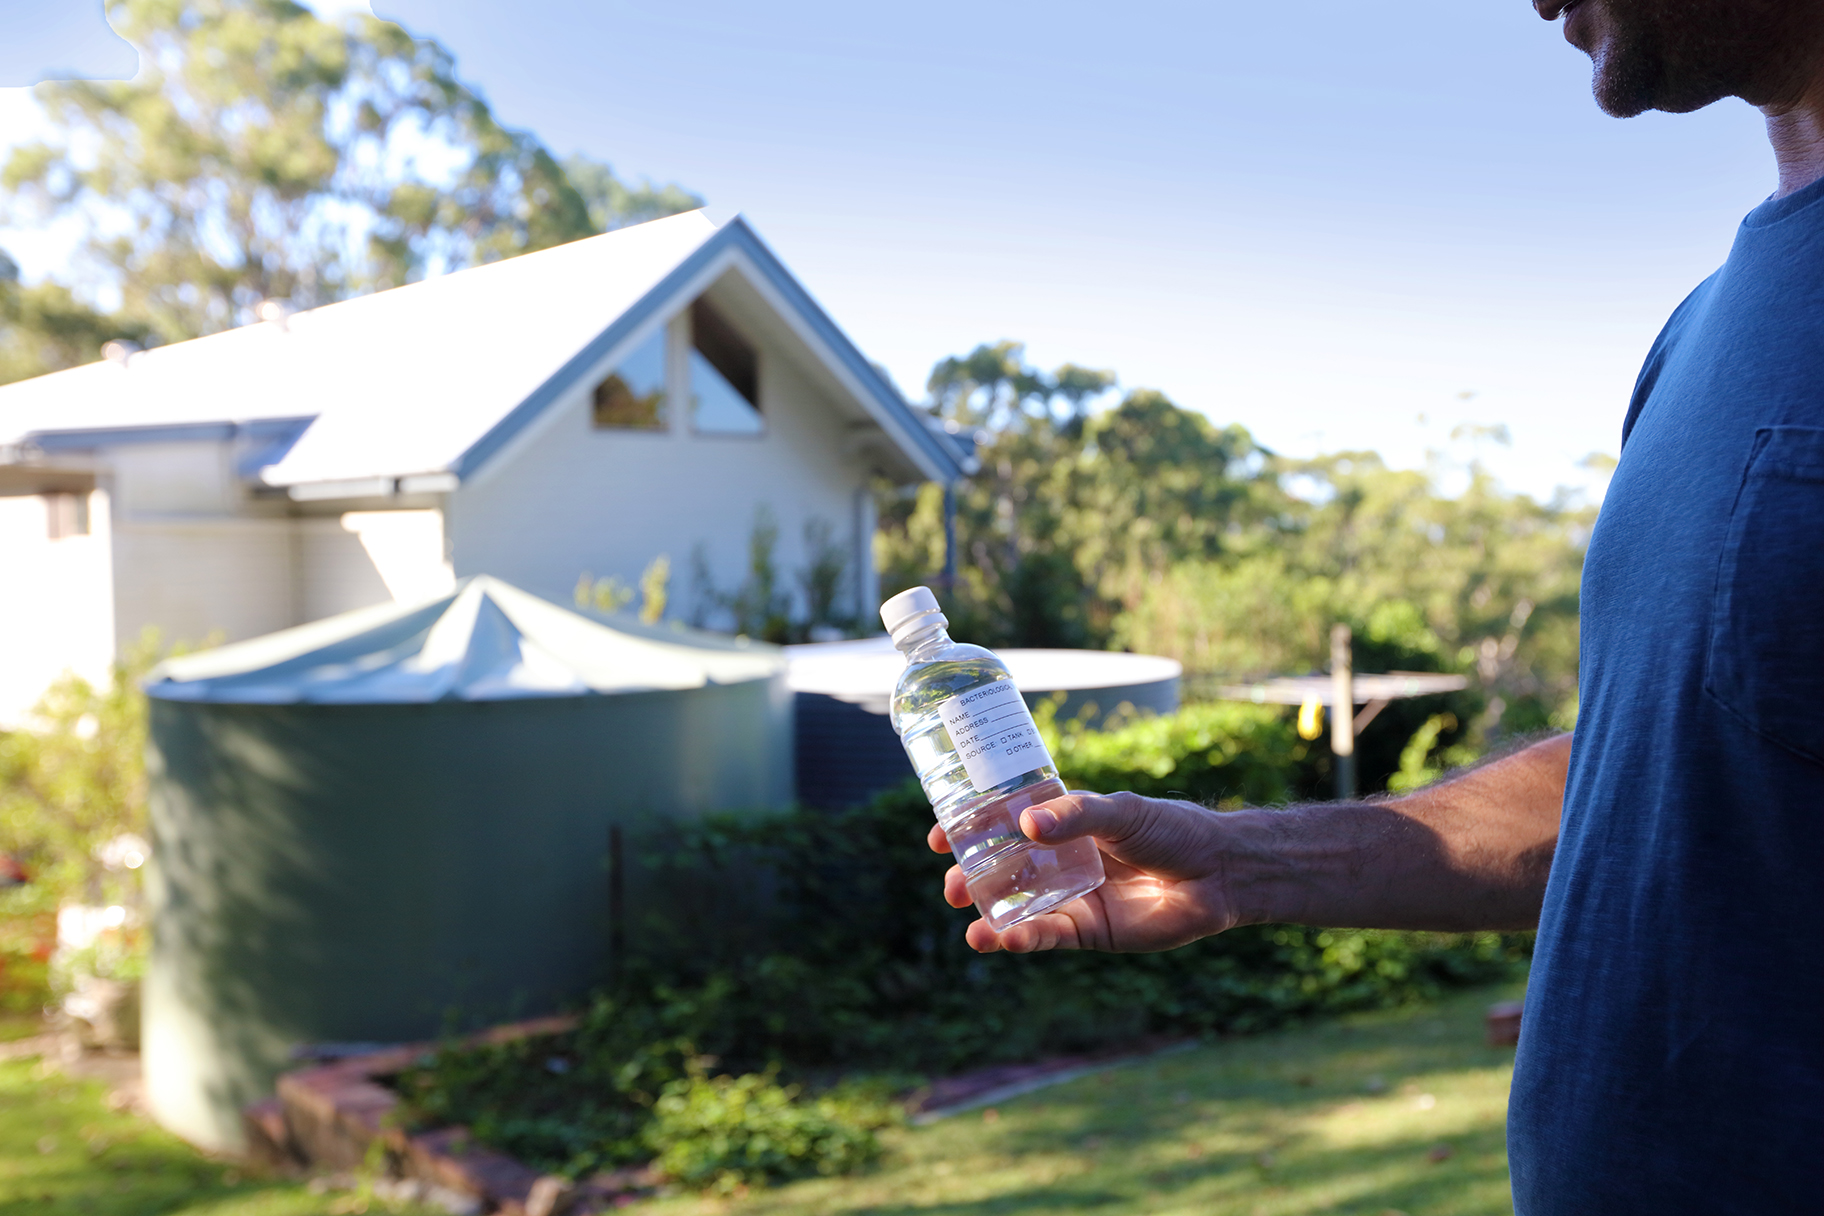 Man collecting water from residential tank for water testing